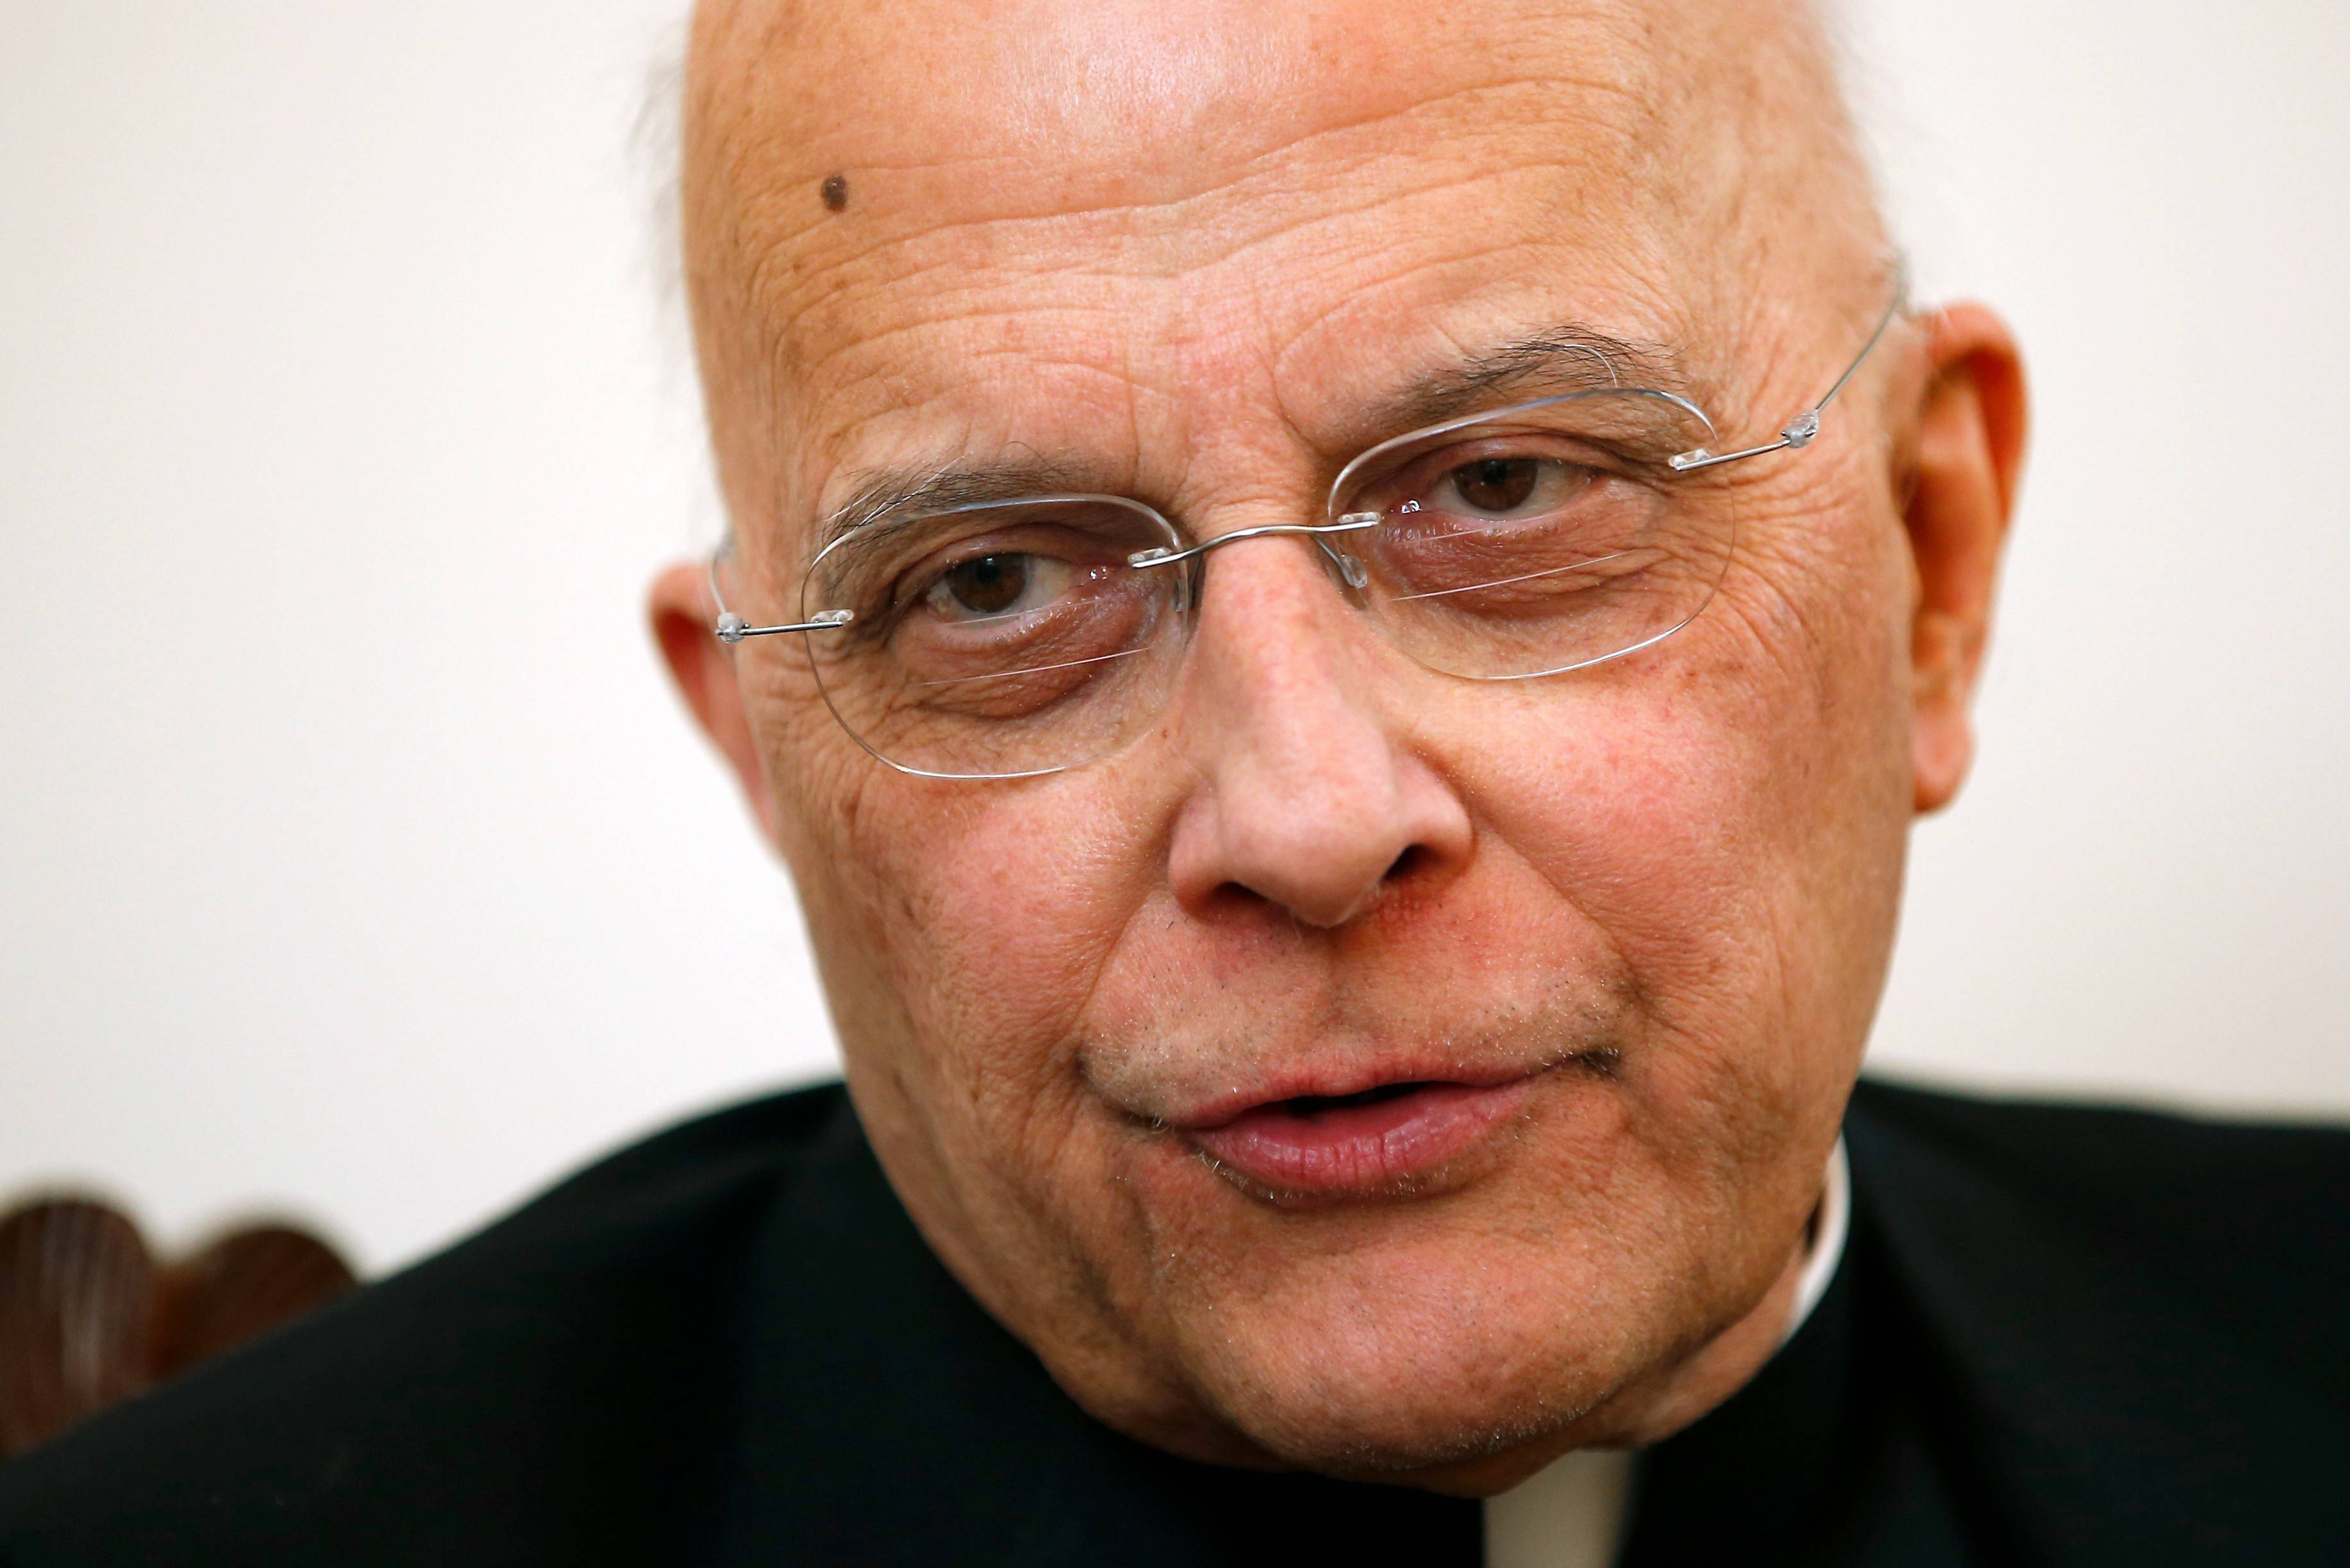 Archdiocese spokeswoman Colleen Dolan said Monday the decision to admit Cardinal Francis George to the hospital Friday was made so that he could receive intravenous fluids and antibiotics.